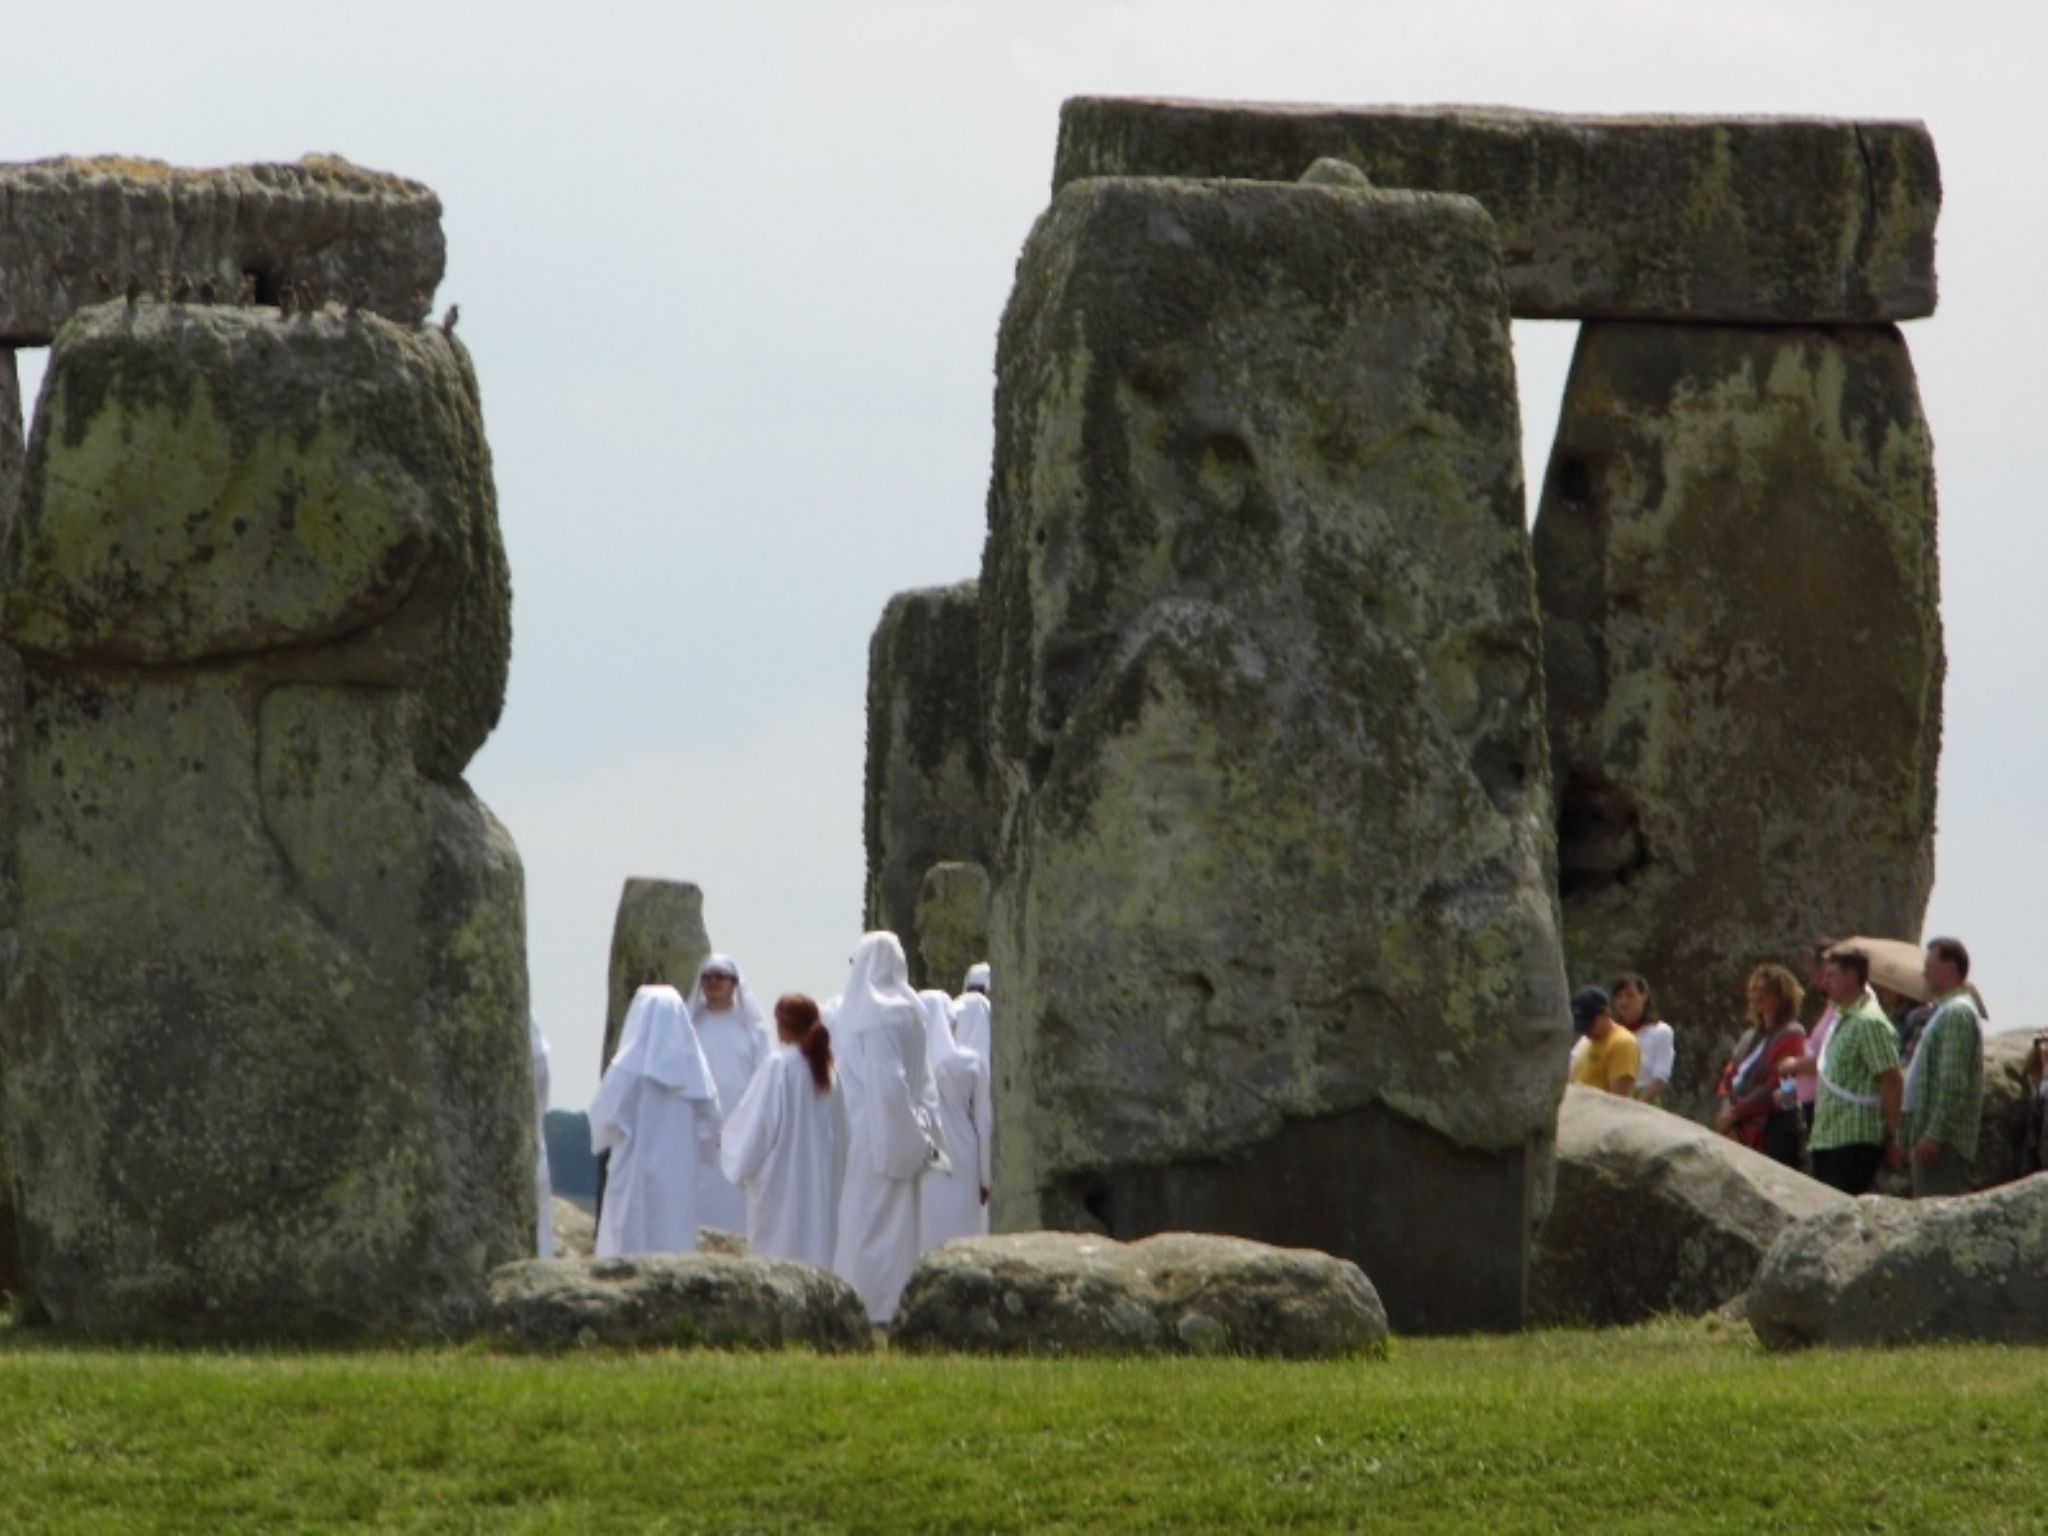 Druids are looking for a holiness at Stonehenge, England (UK) by ambertale60